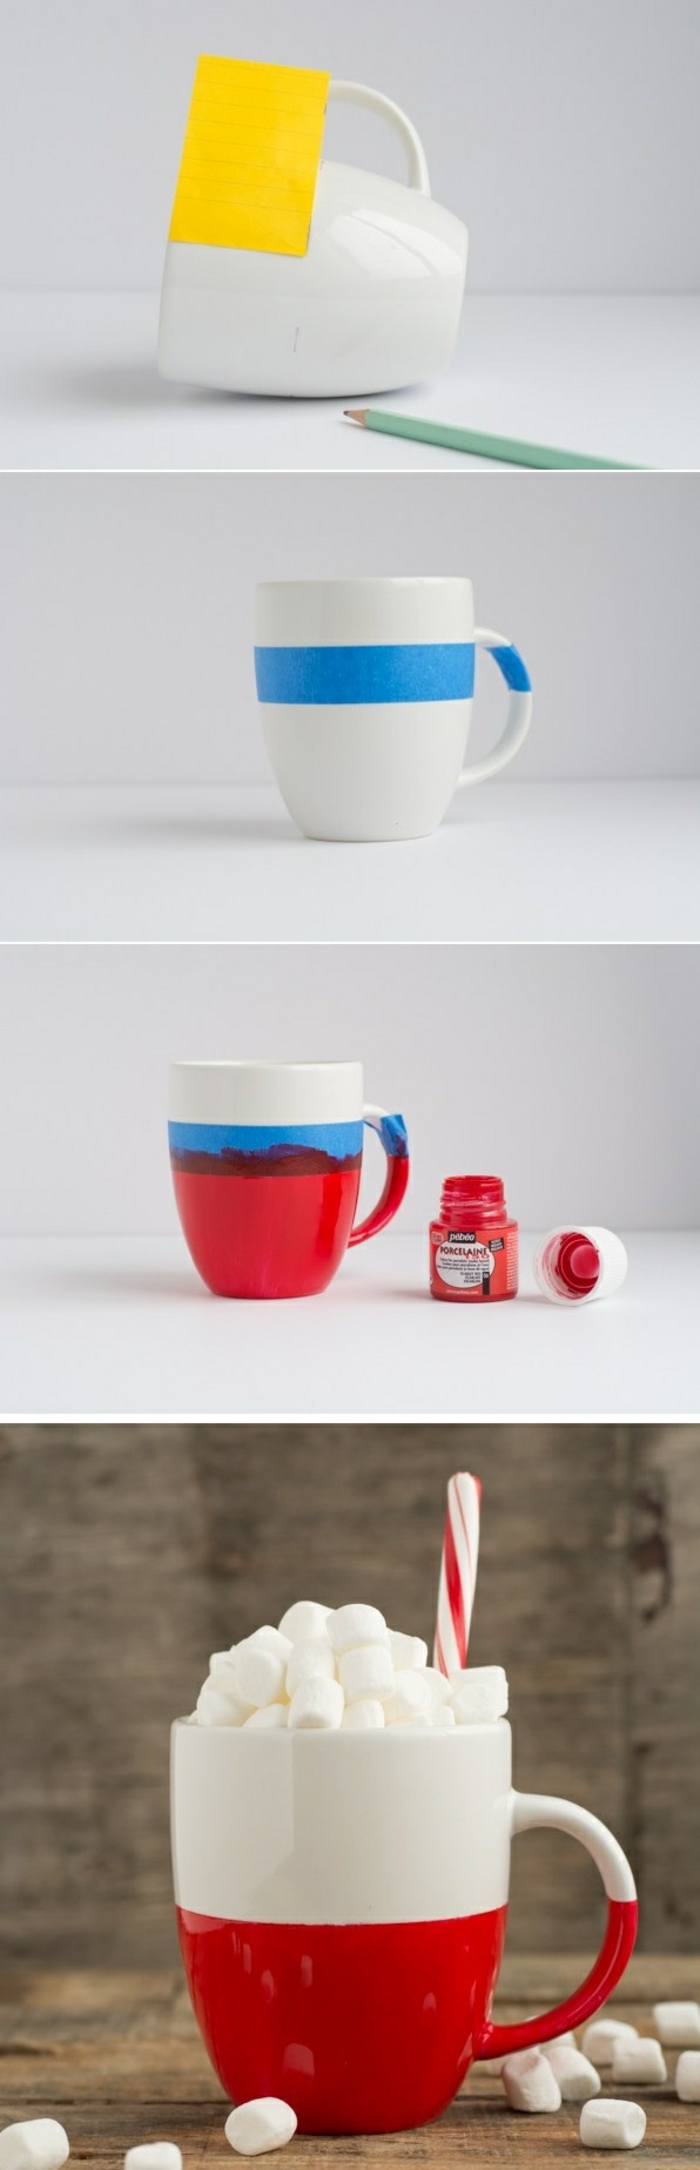 diy tutorial, half white, half red, coffee mug, crafts for adults, step by step